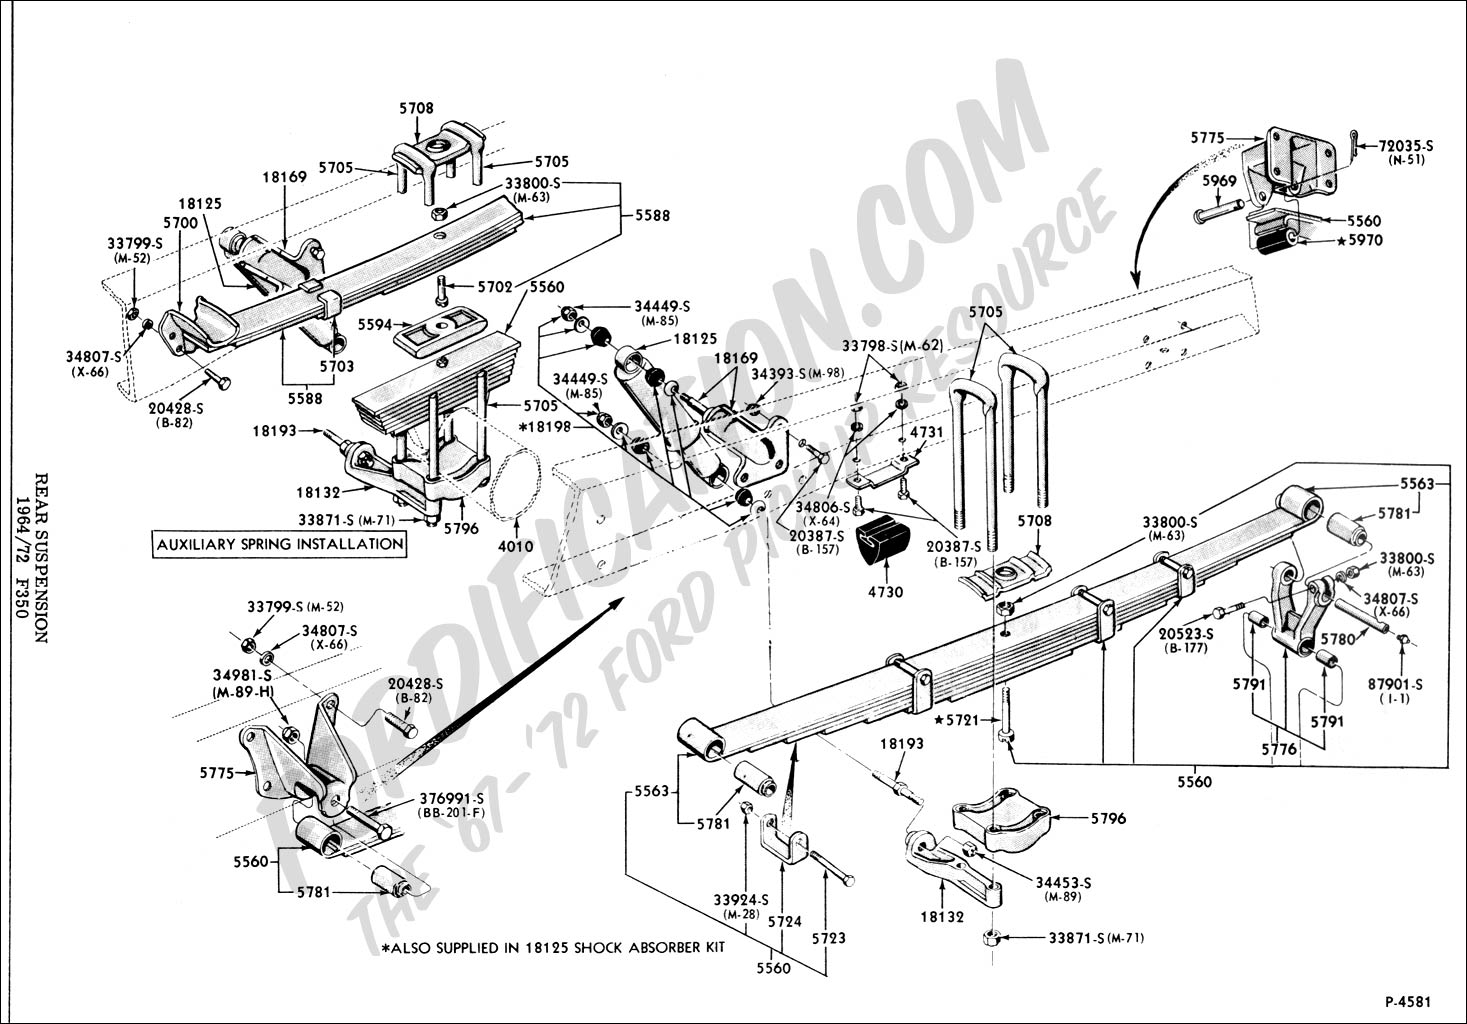 2001 F350 Suspension Diagram Wiring Diagrams 1995 2003 F250 Front Third Level 1999 Ford F